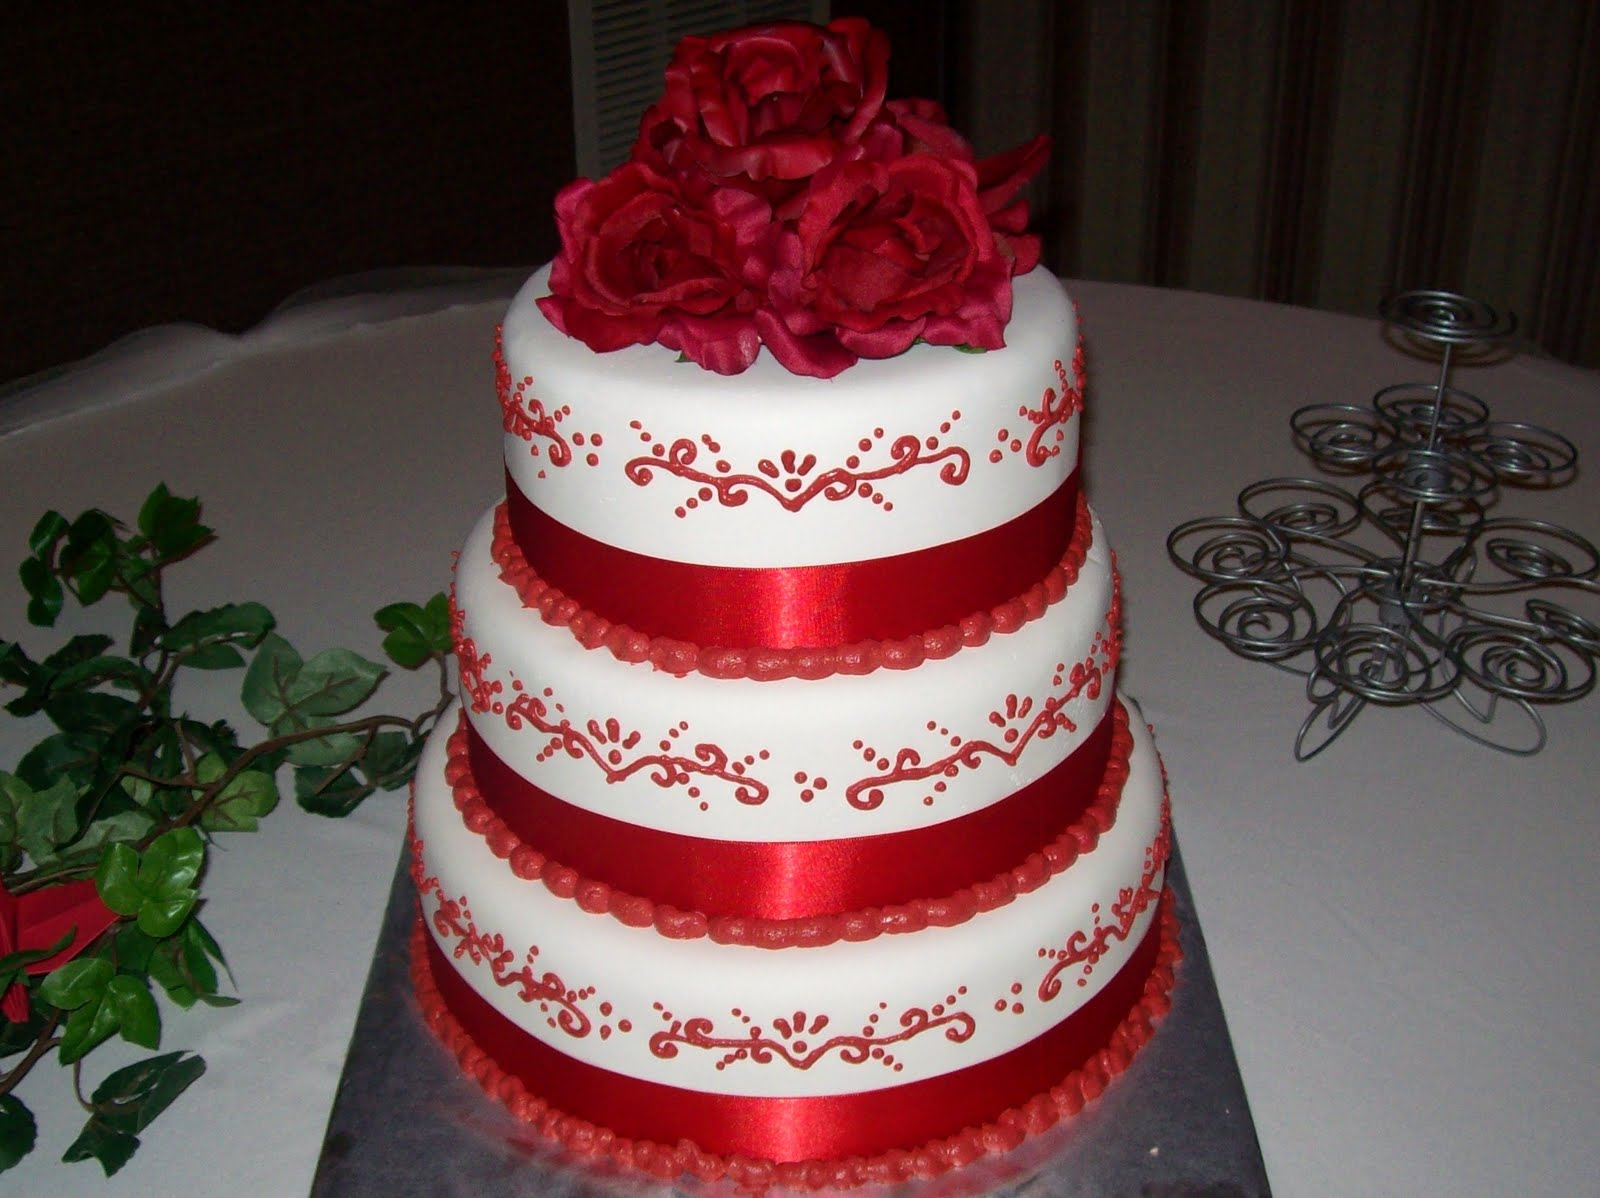 Red Colour Cake Images : Pasteles de Boda - Pasteles D  Lul?